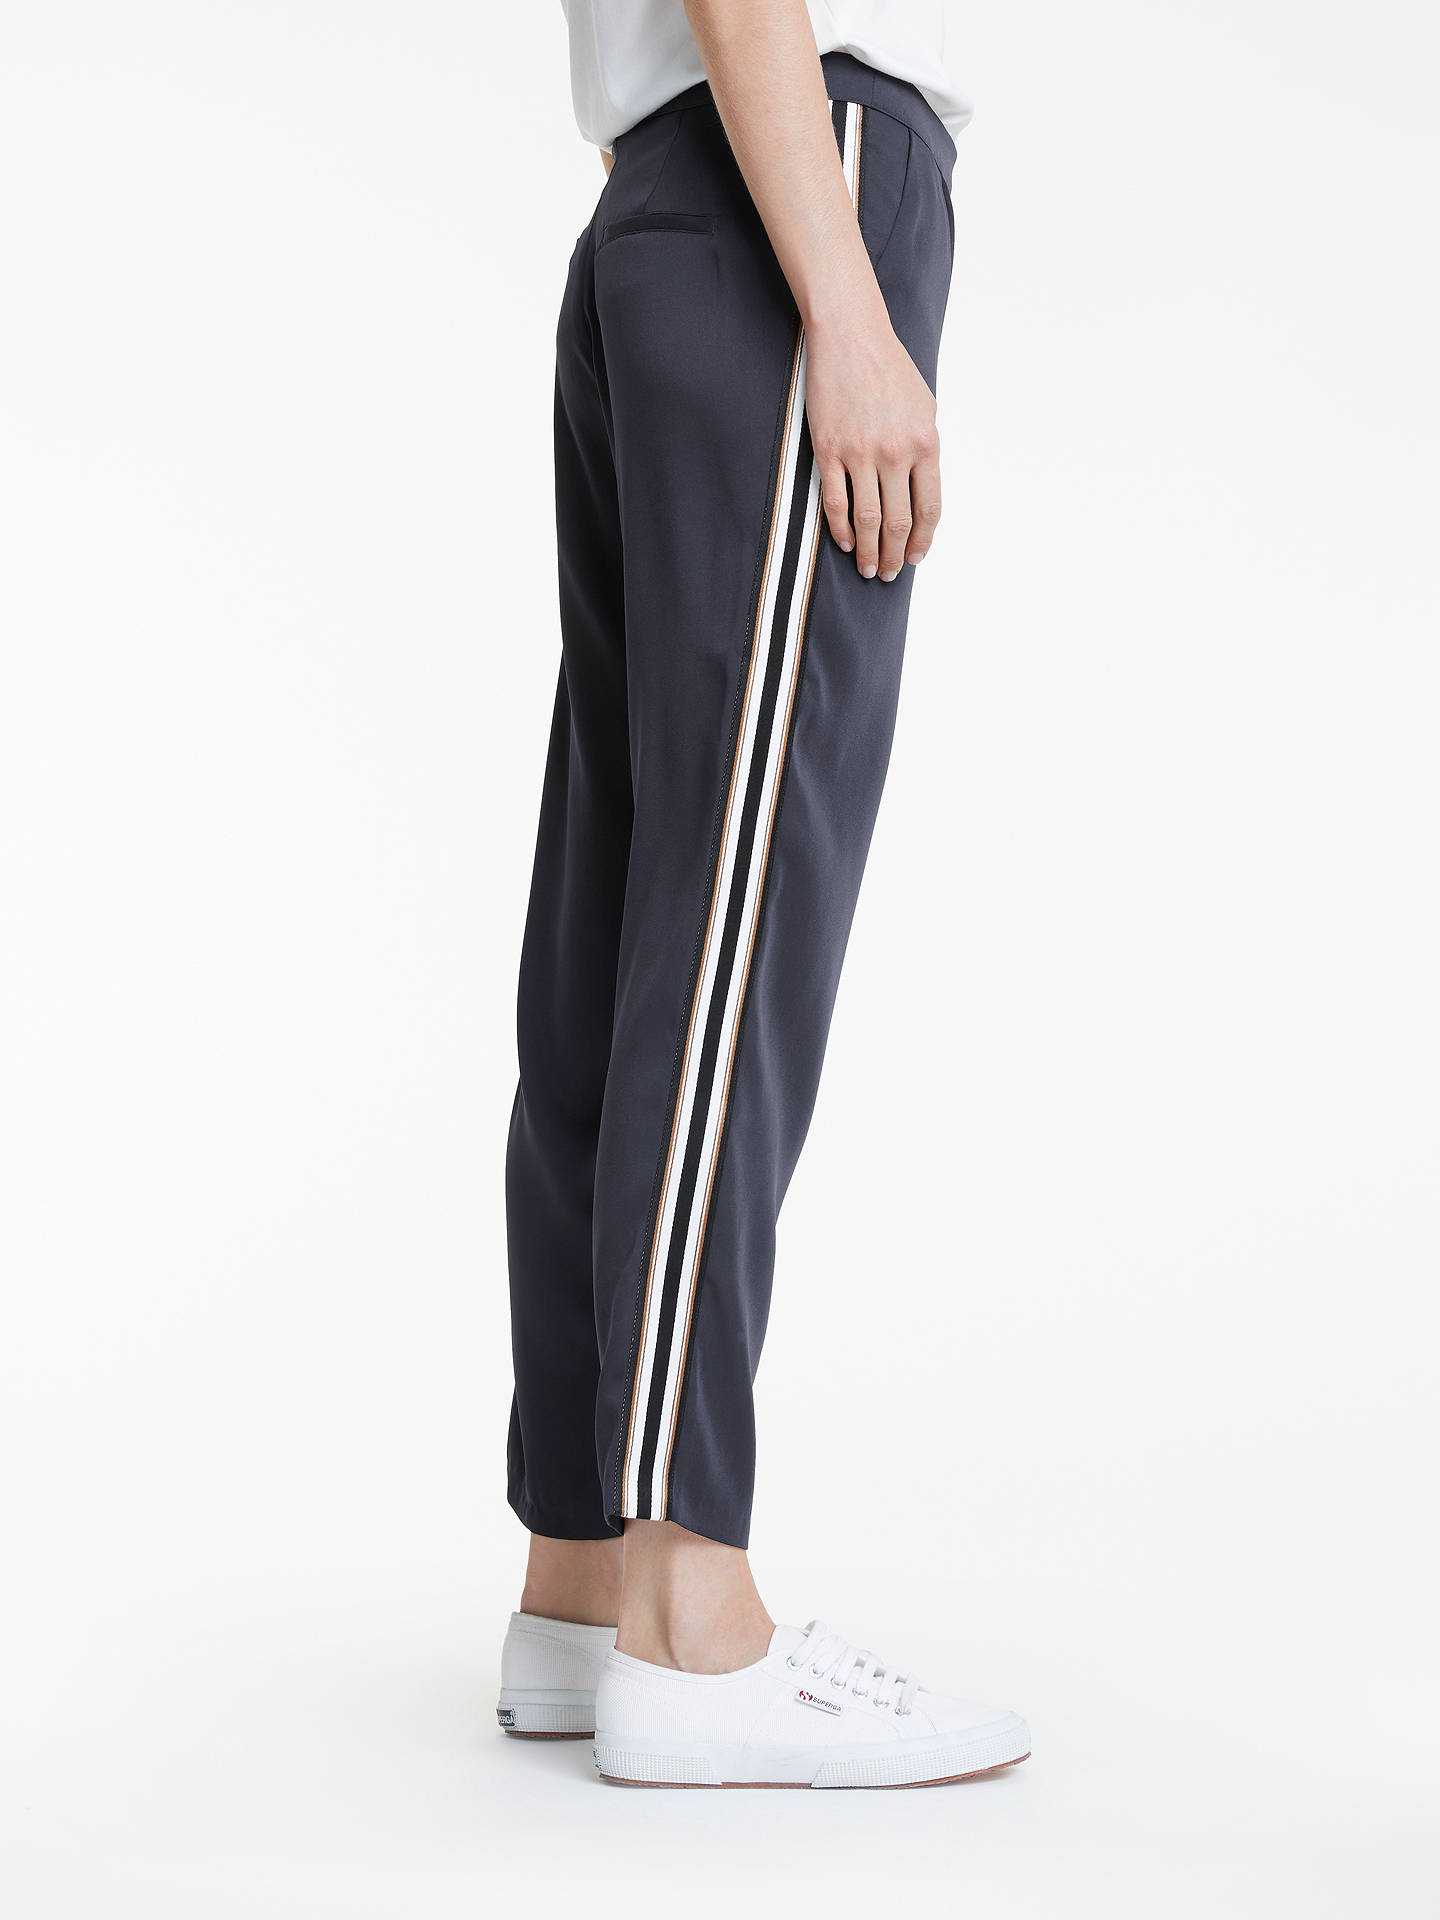 BuyY.A.S Khool Trousers, Night Sky, S Online at johnlewis.com